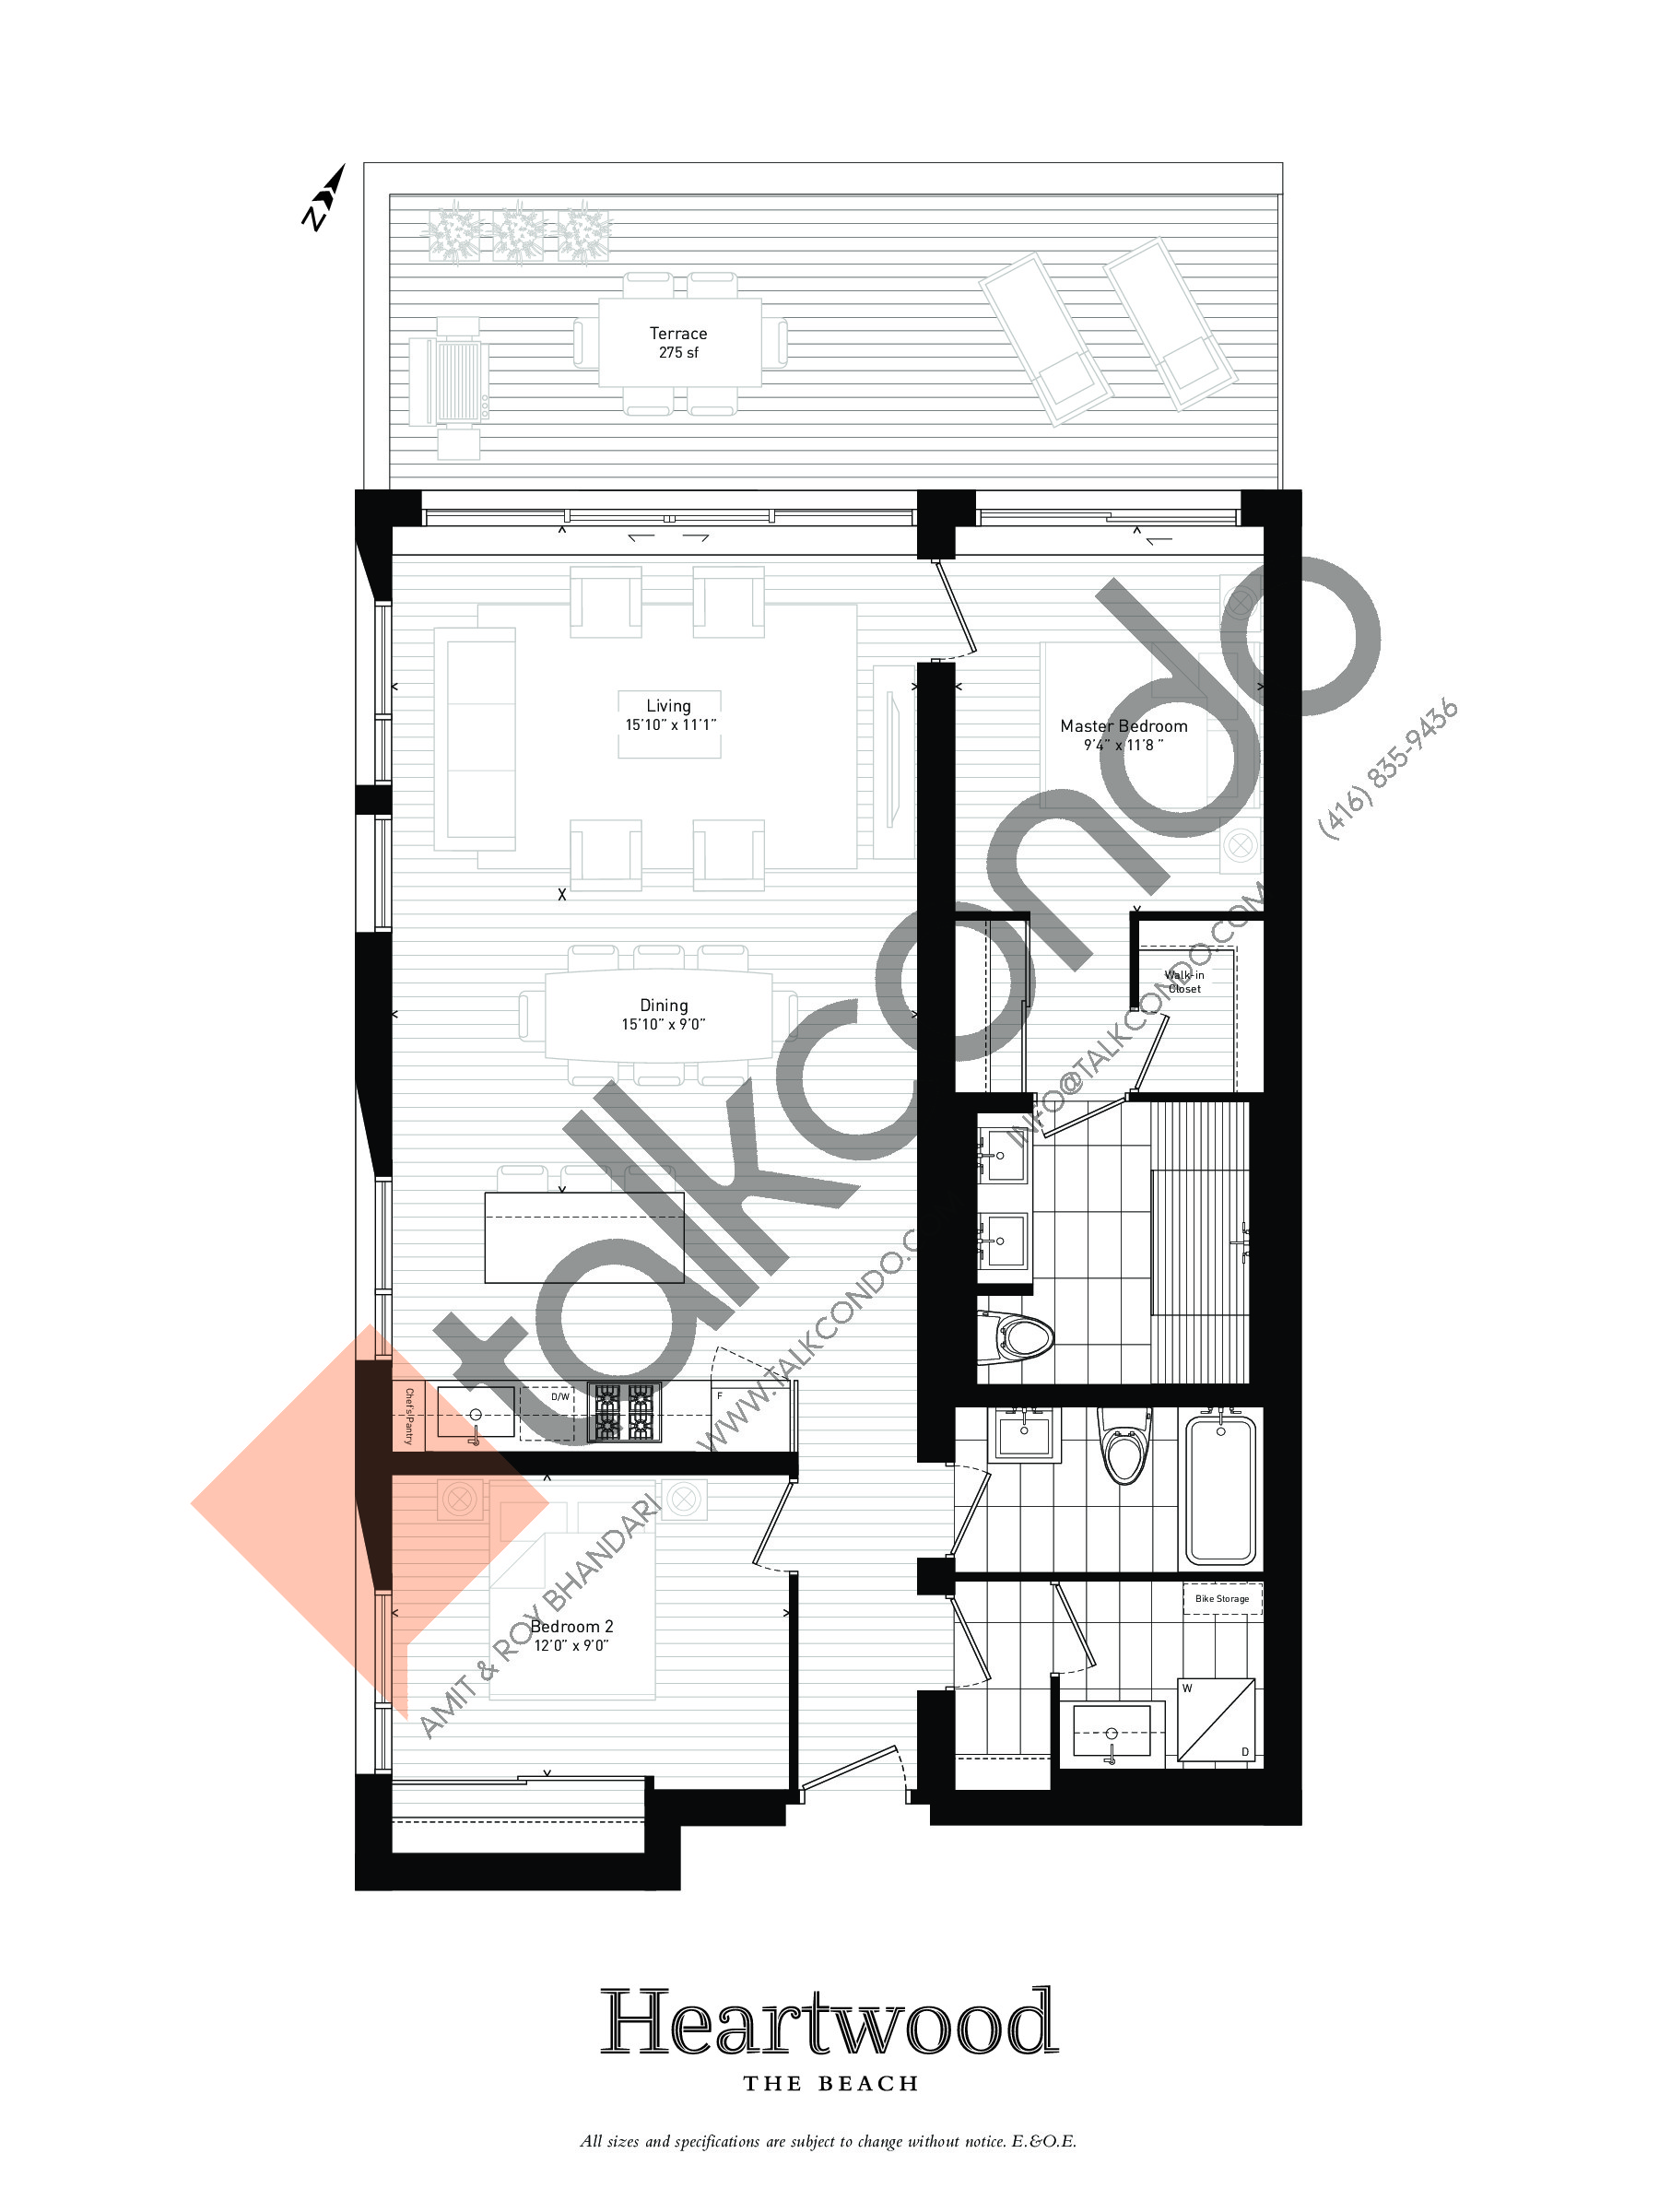 204 Floor Plan at Heartwood the Beach Condos - 1161 sq.ft